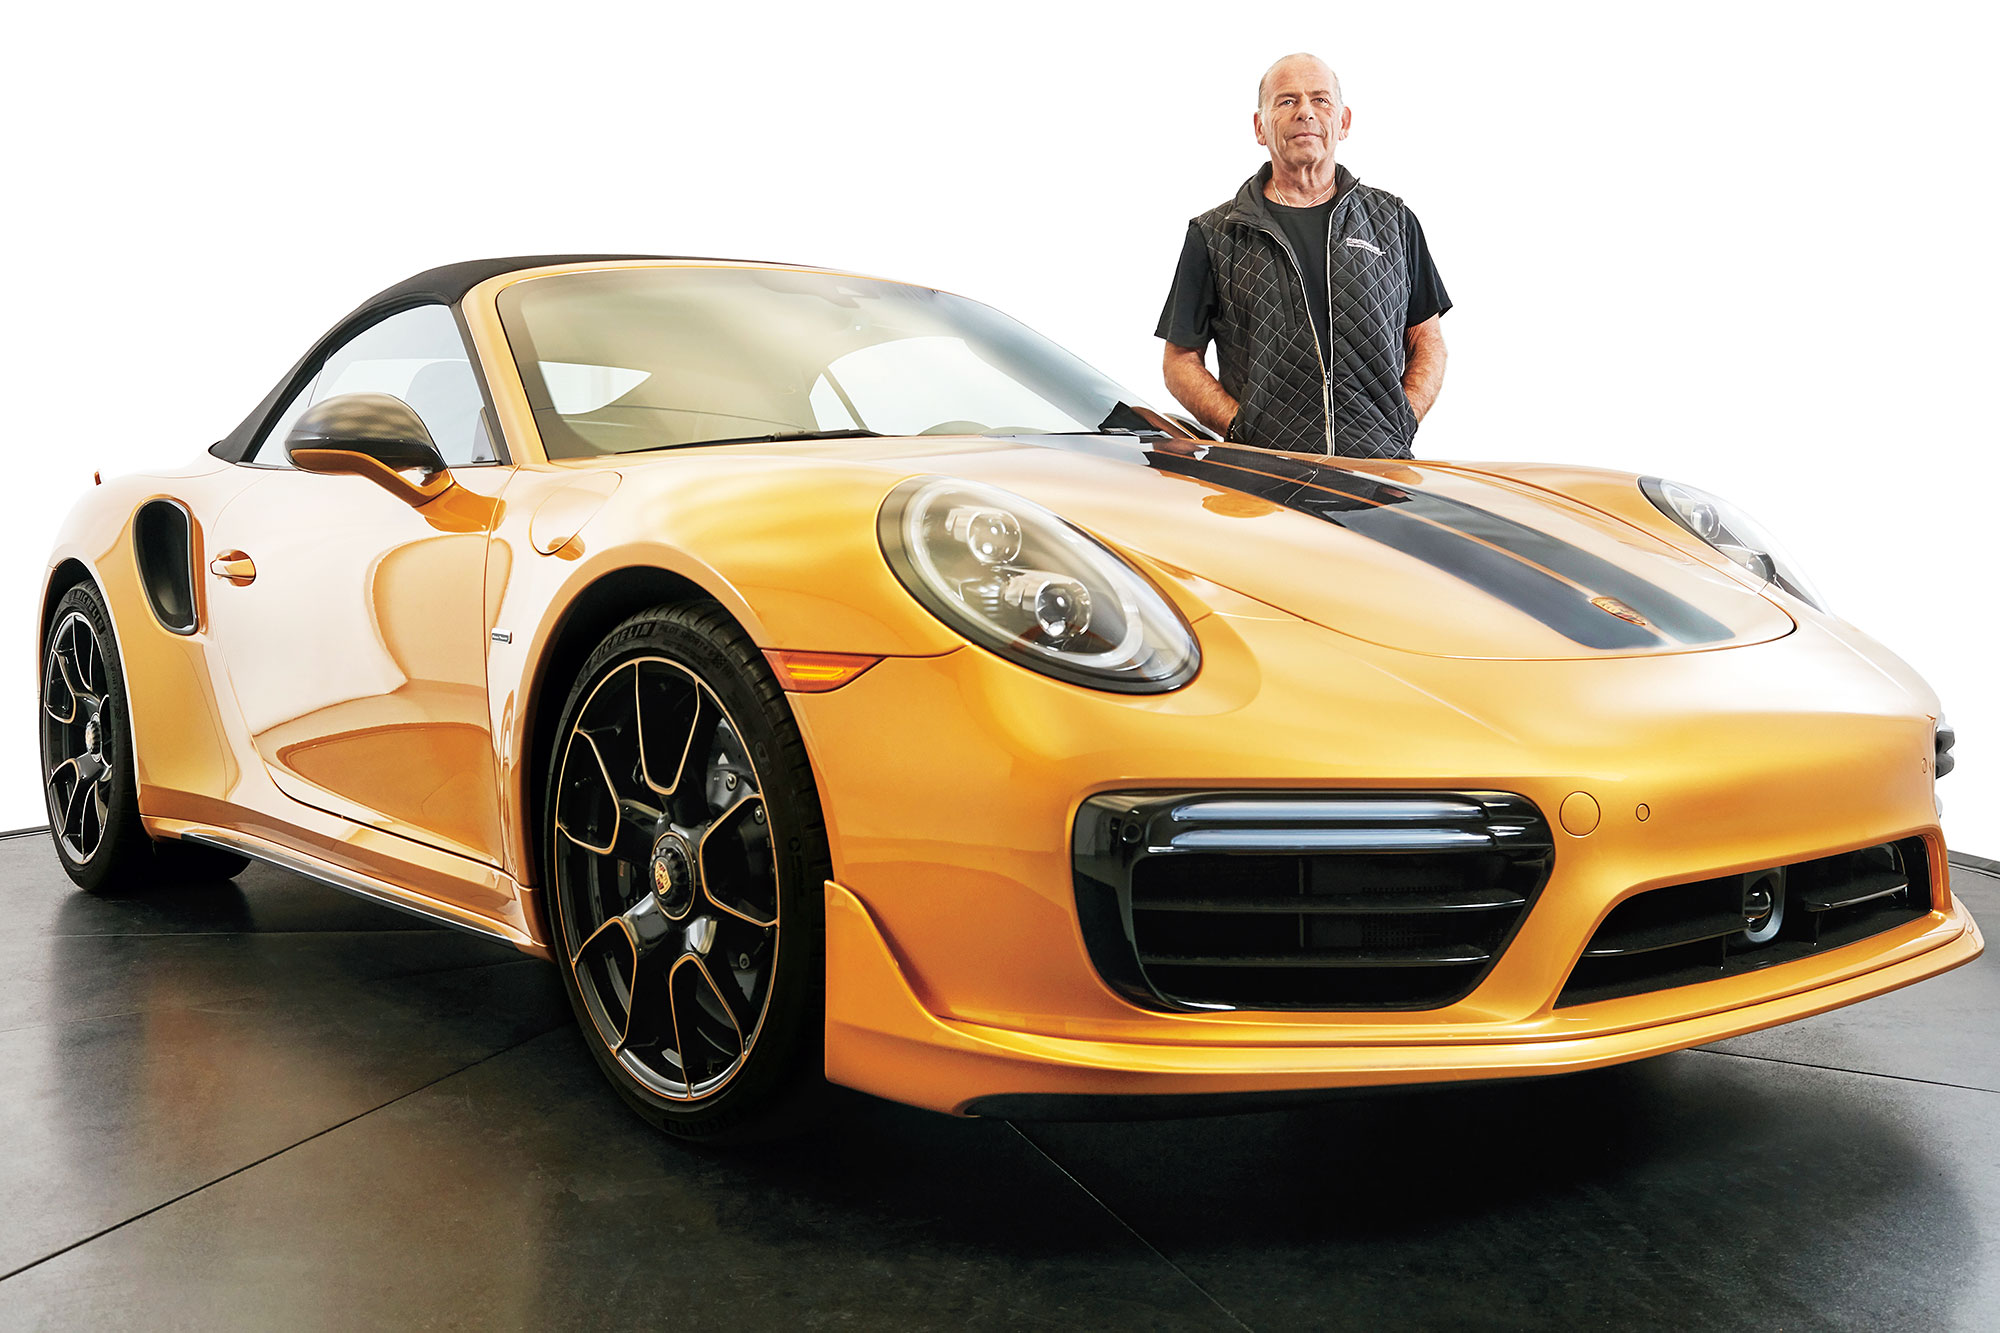 Luxury Car Expert Brian Miller Shares His Tips for Buying a High-End Vehicle: 'You Can Always Get a Deal'